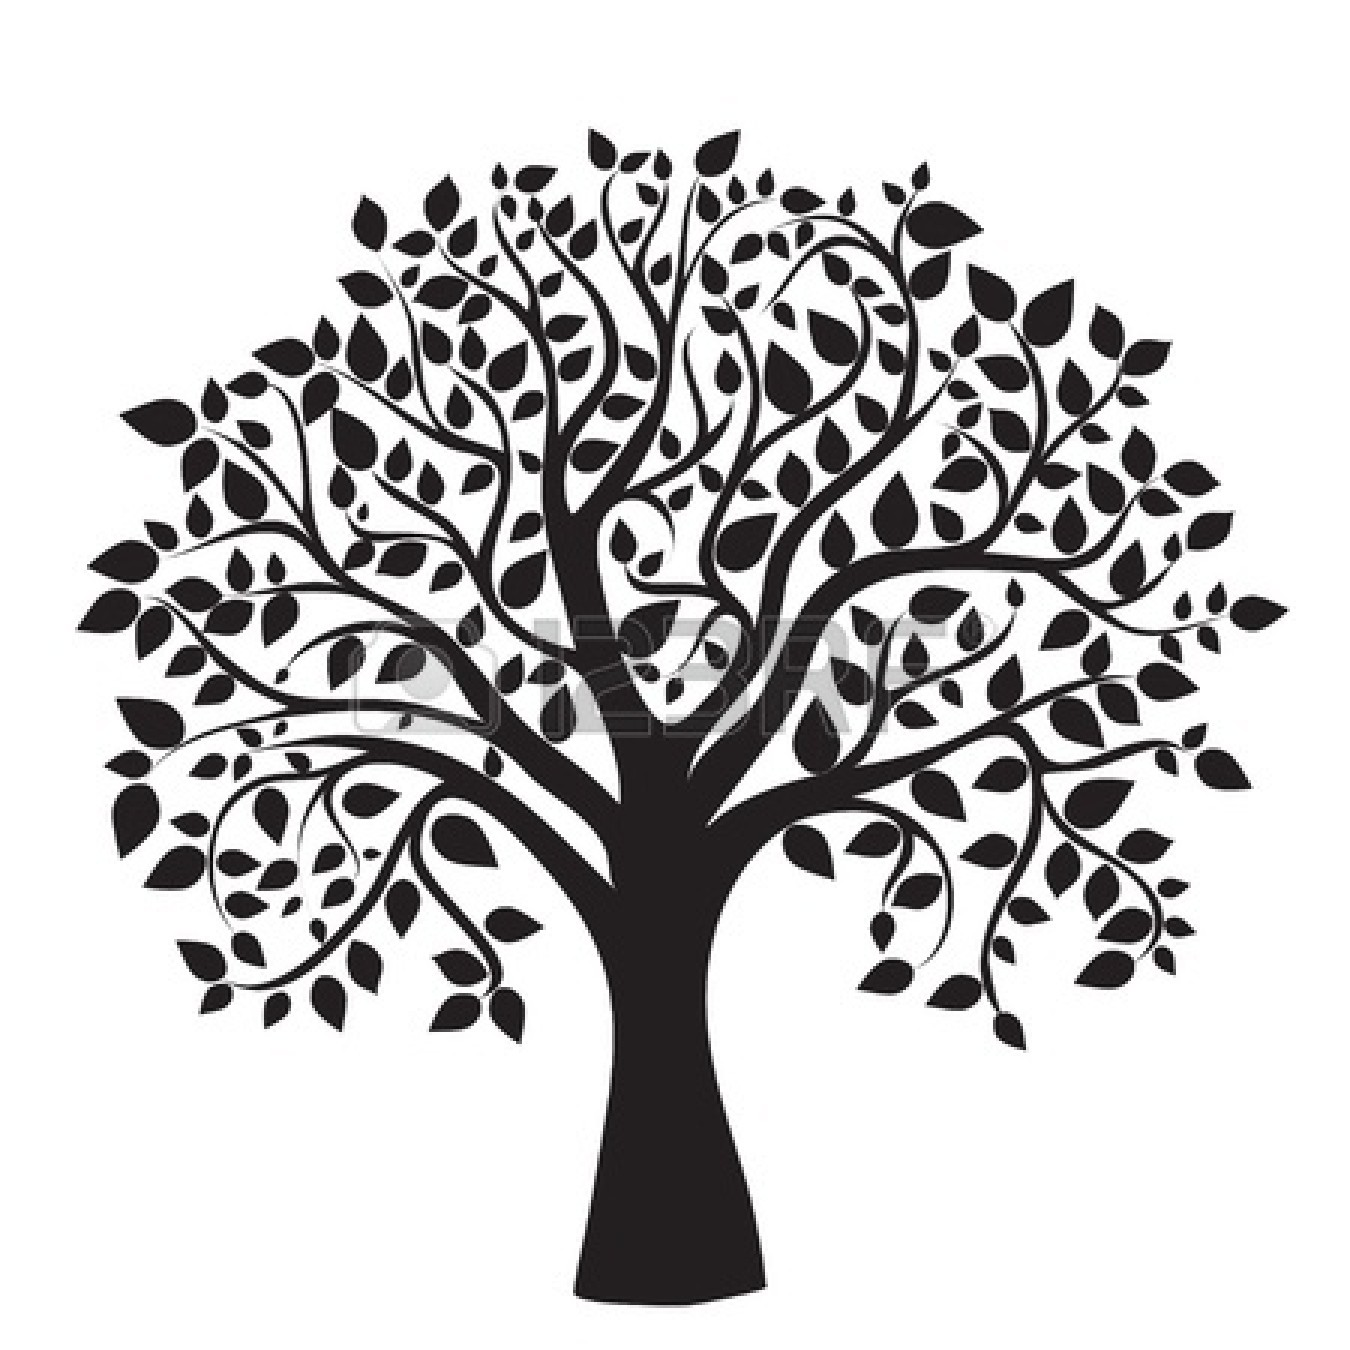 family reunion clipart. Family tree family black and .